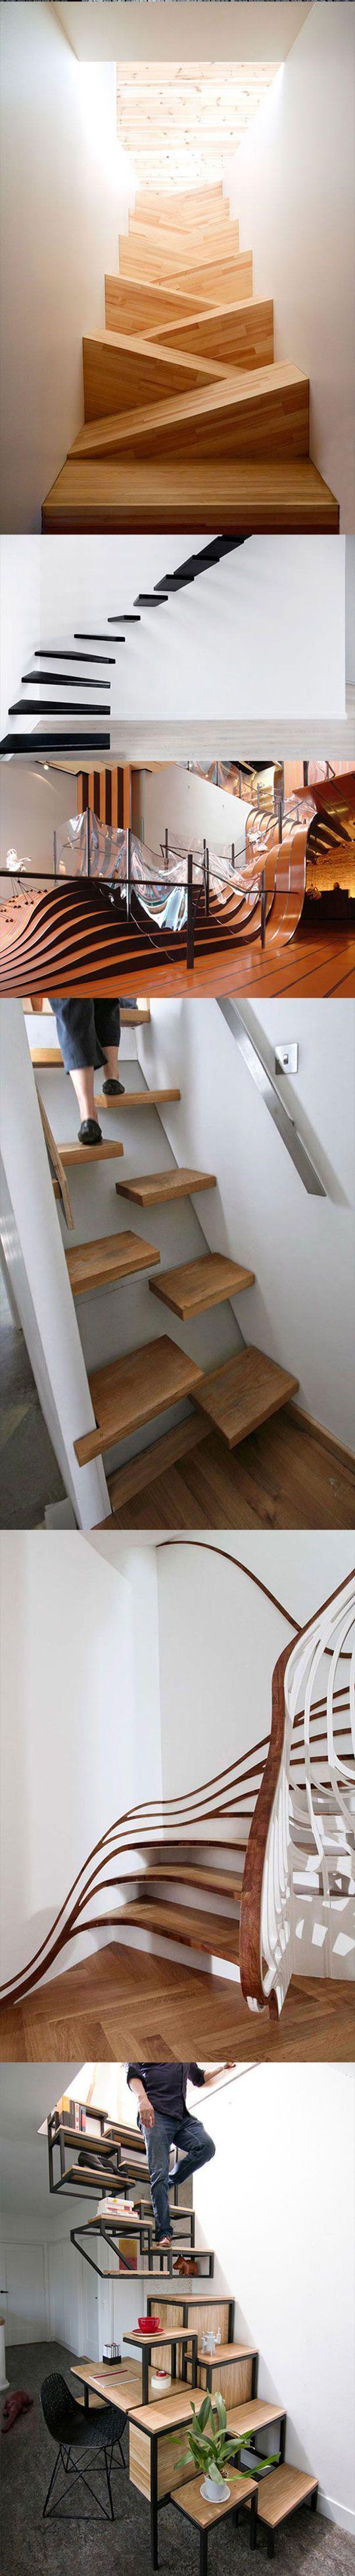 cool-stairs-innovative-prototype